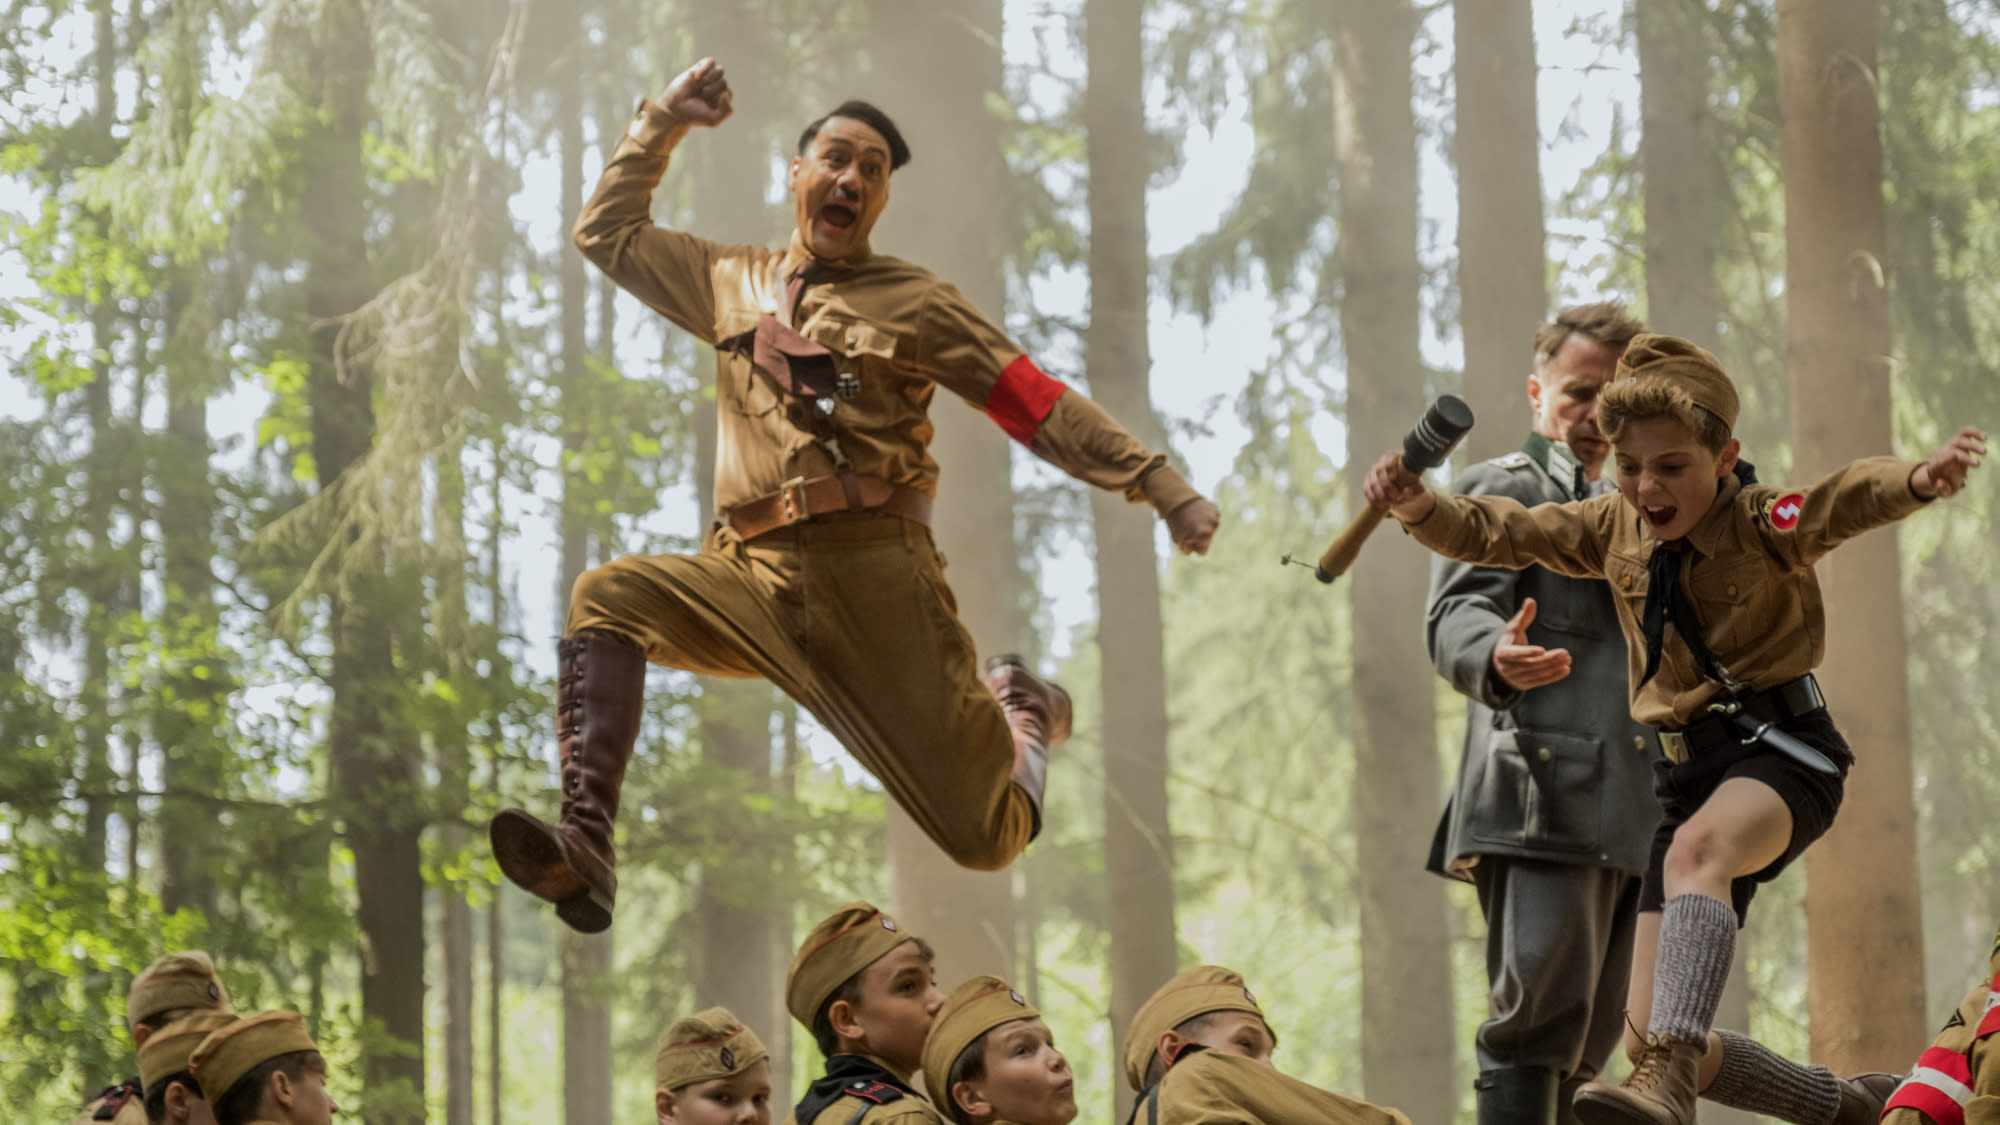 Taika Waititi plays a Hitler Youth child's imaginary version of the Fuhrer in this bizarre comedy, which has already been divisive on the festival circuit. It's obviously the logical project to take on between Marvel behemoths. (Credit: Fox)